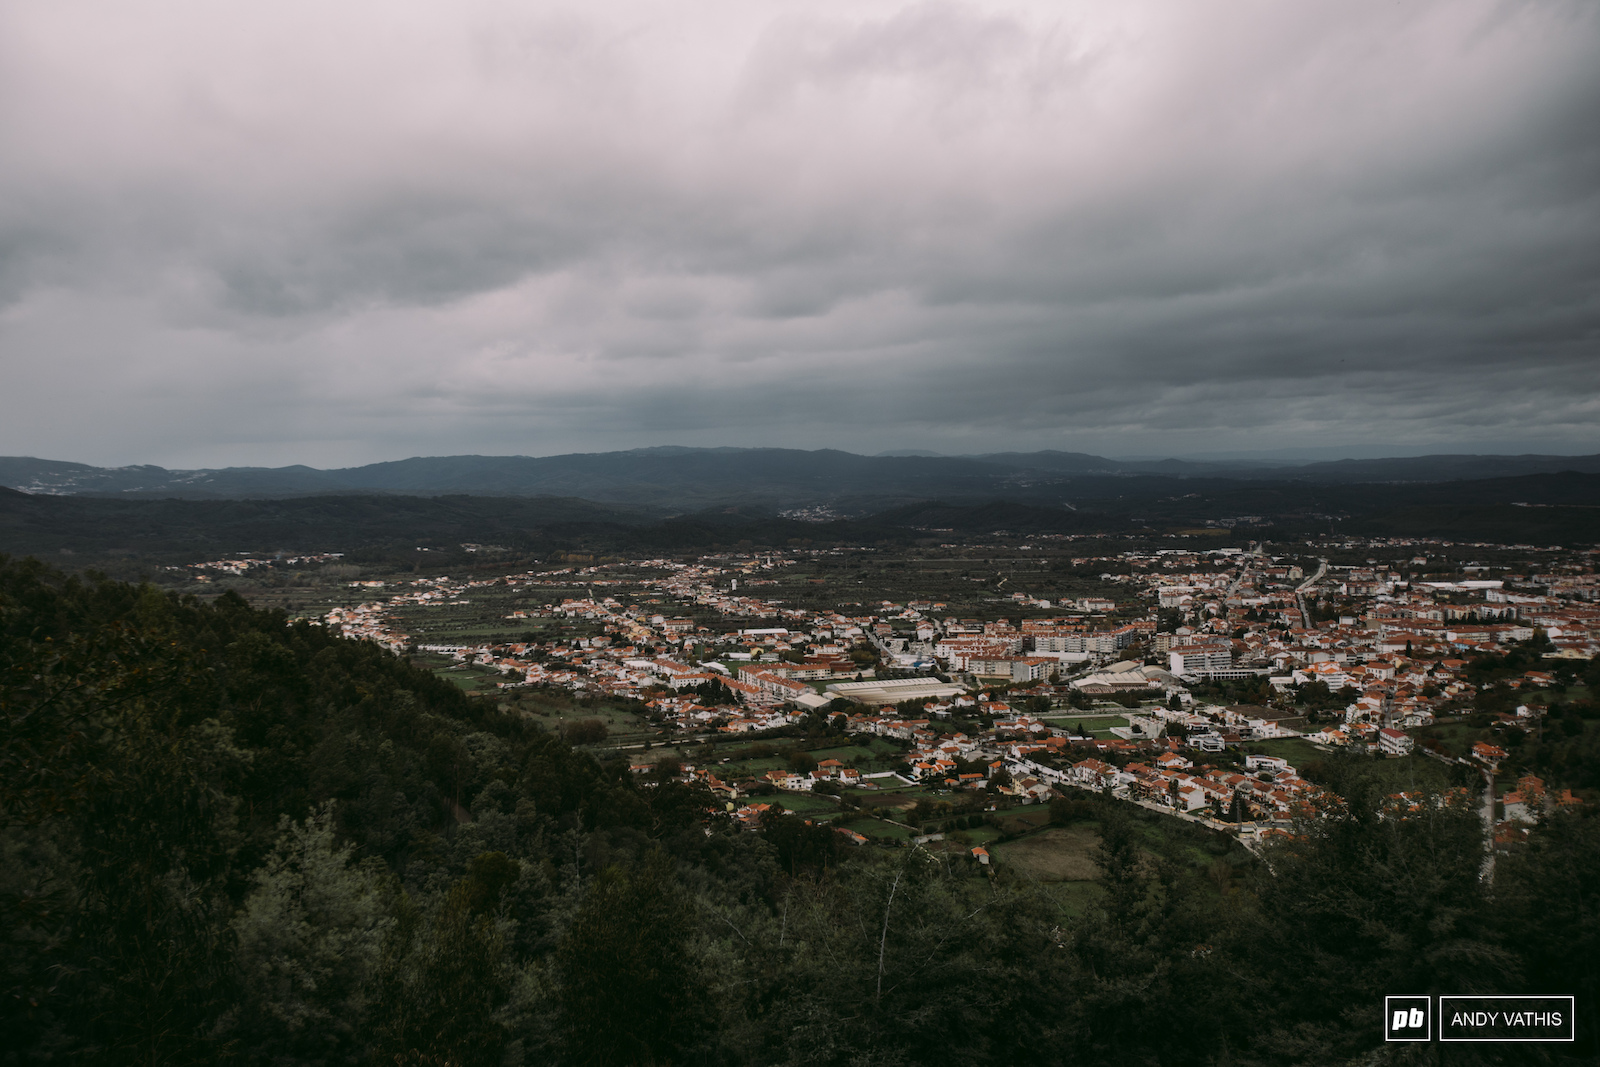 The town of Lousa under a blanket of rain clouds.